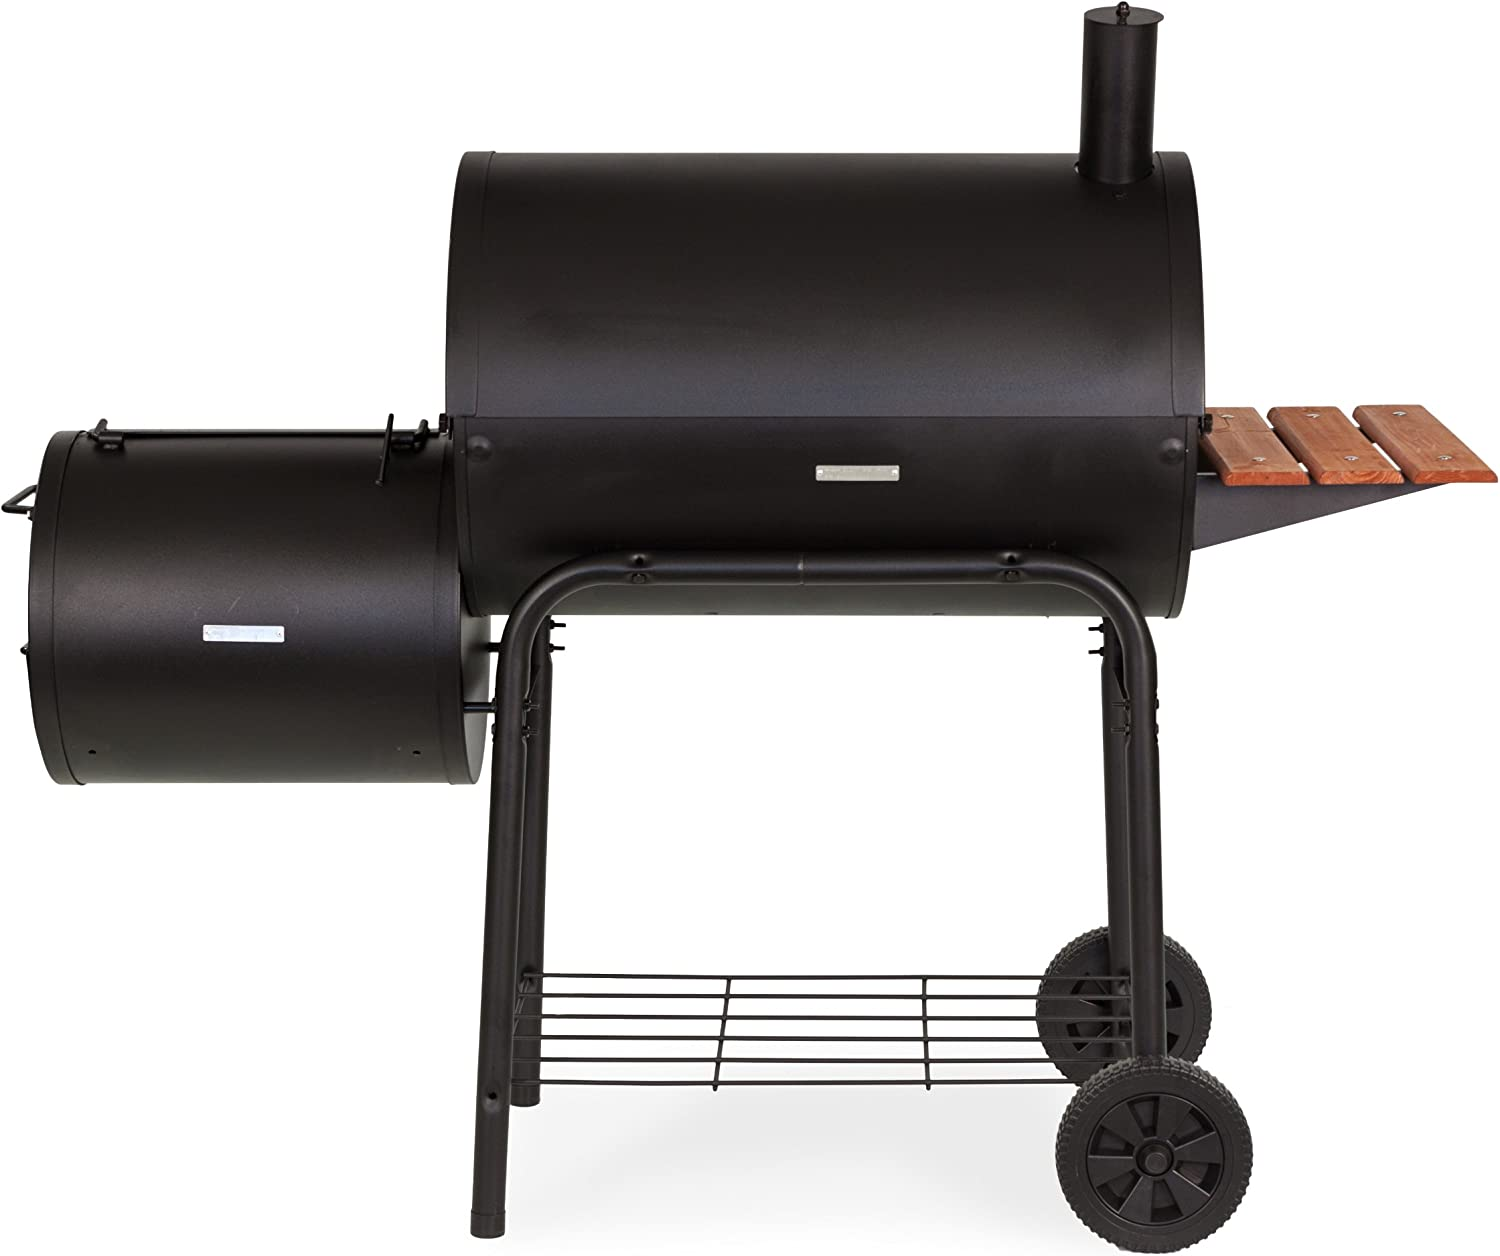 Char-Griller Smokin Pro 830 - Front View Photo